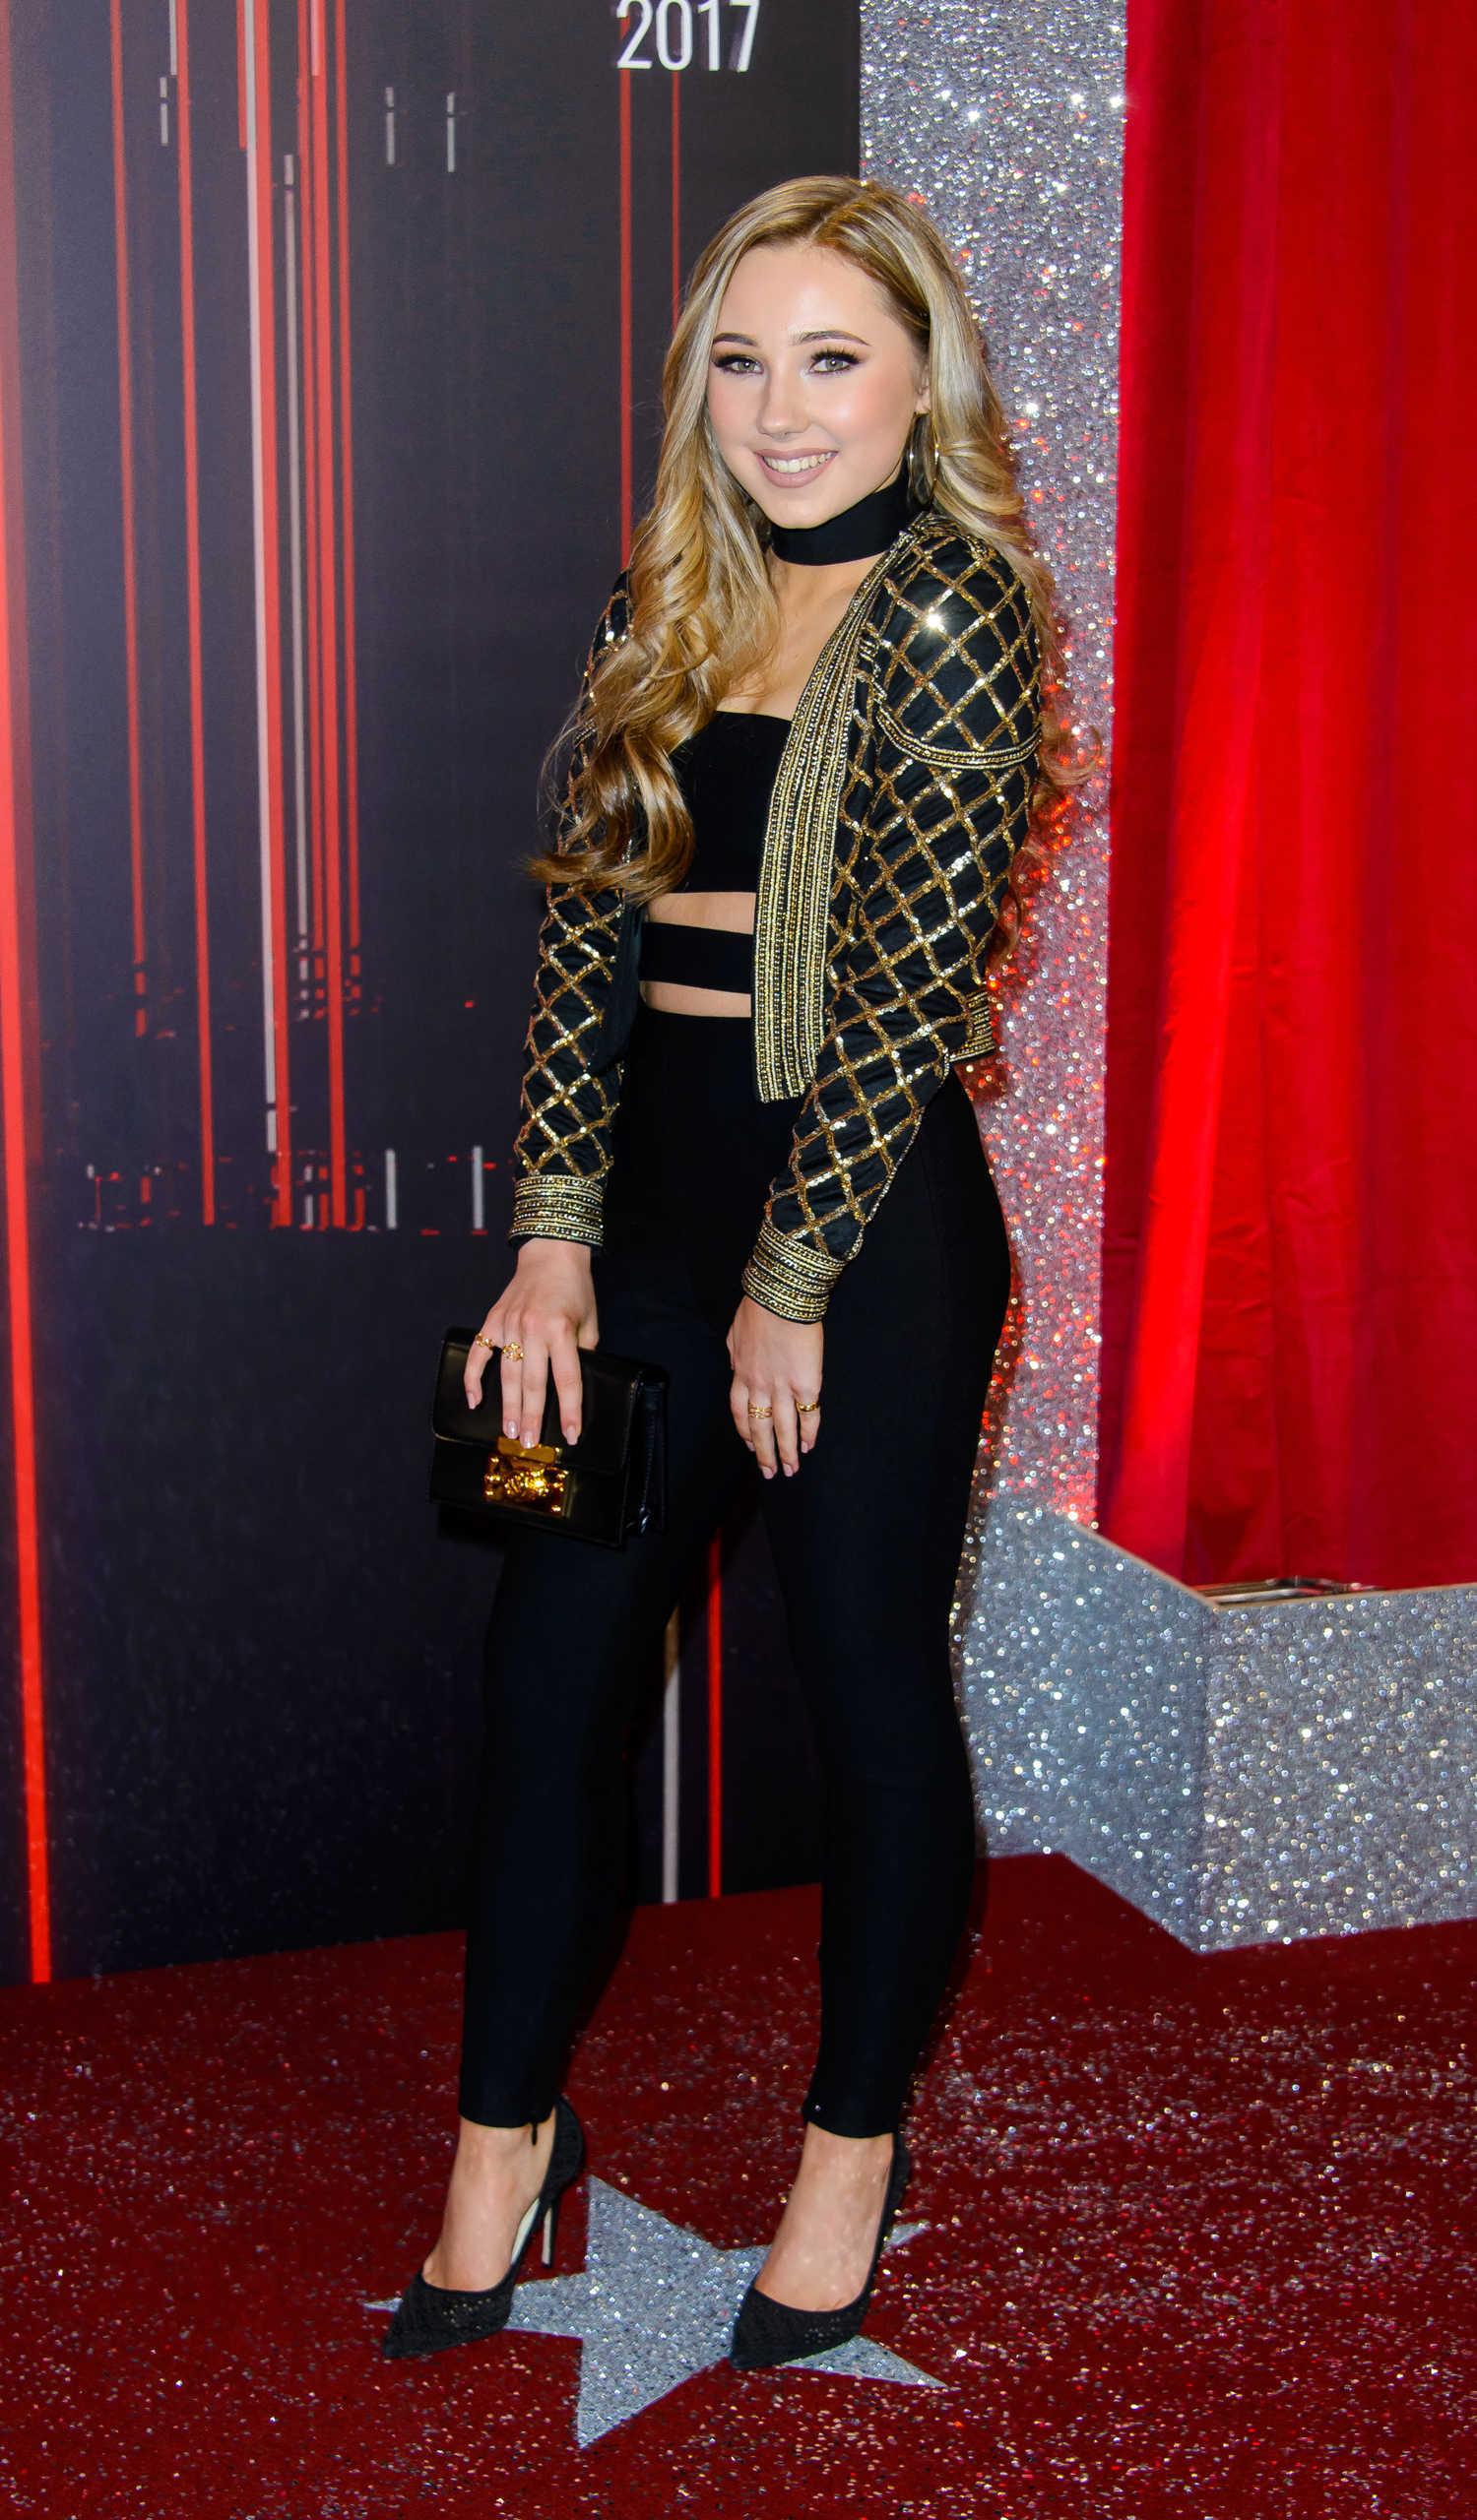 Ruby O Donnell At The 2017 British Soap Awards In